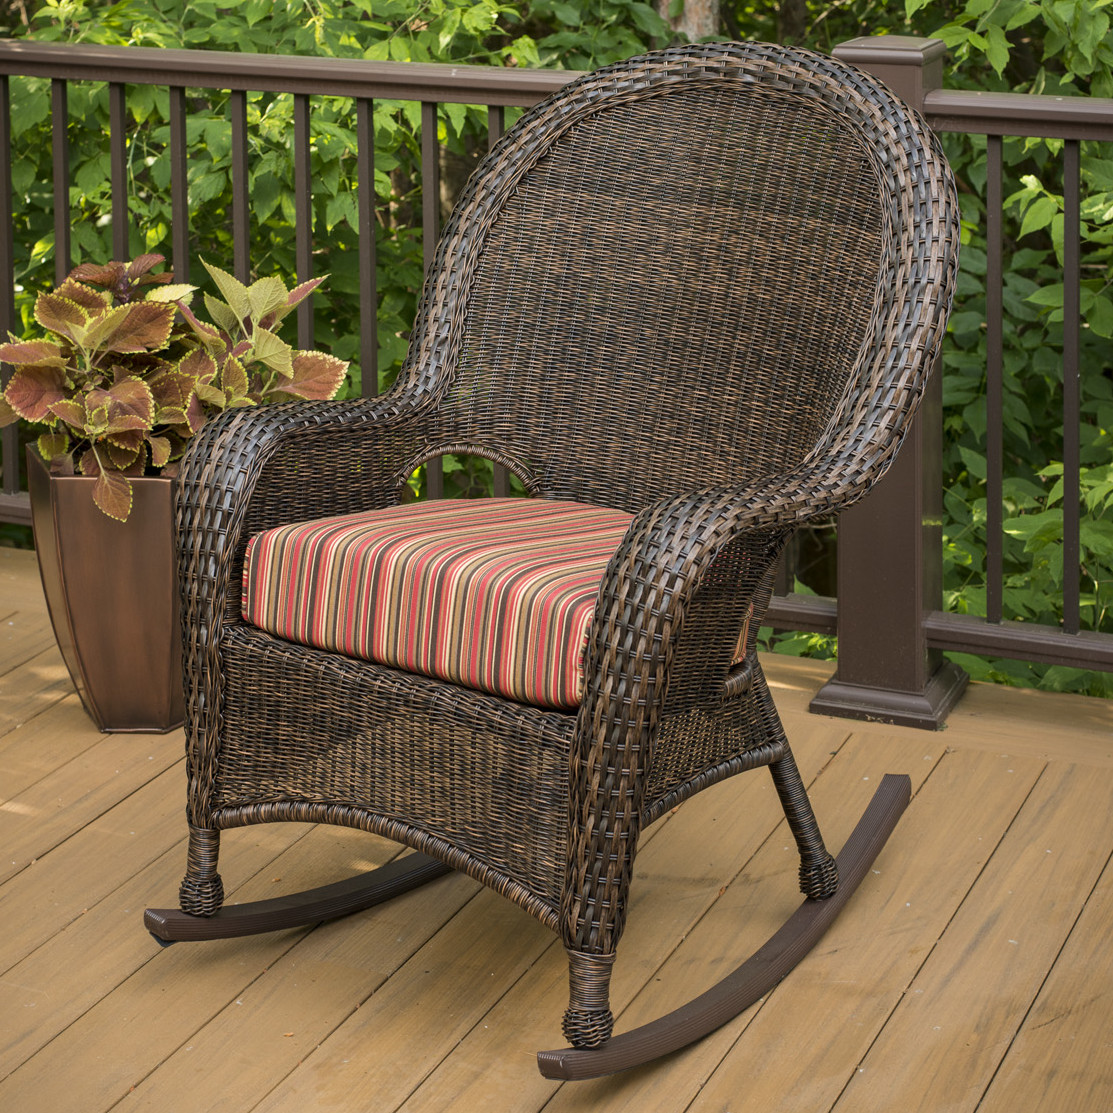 Wicker furniture for home